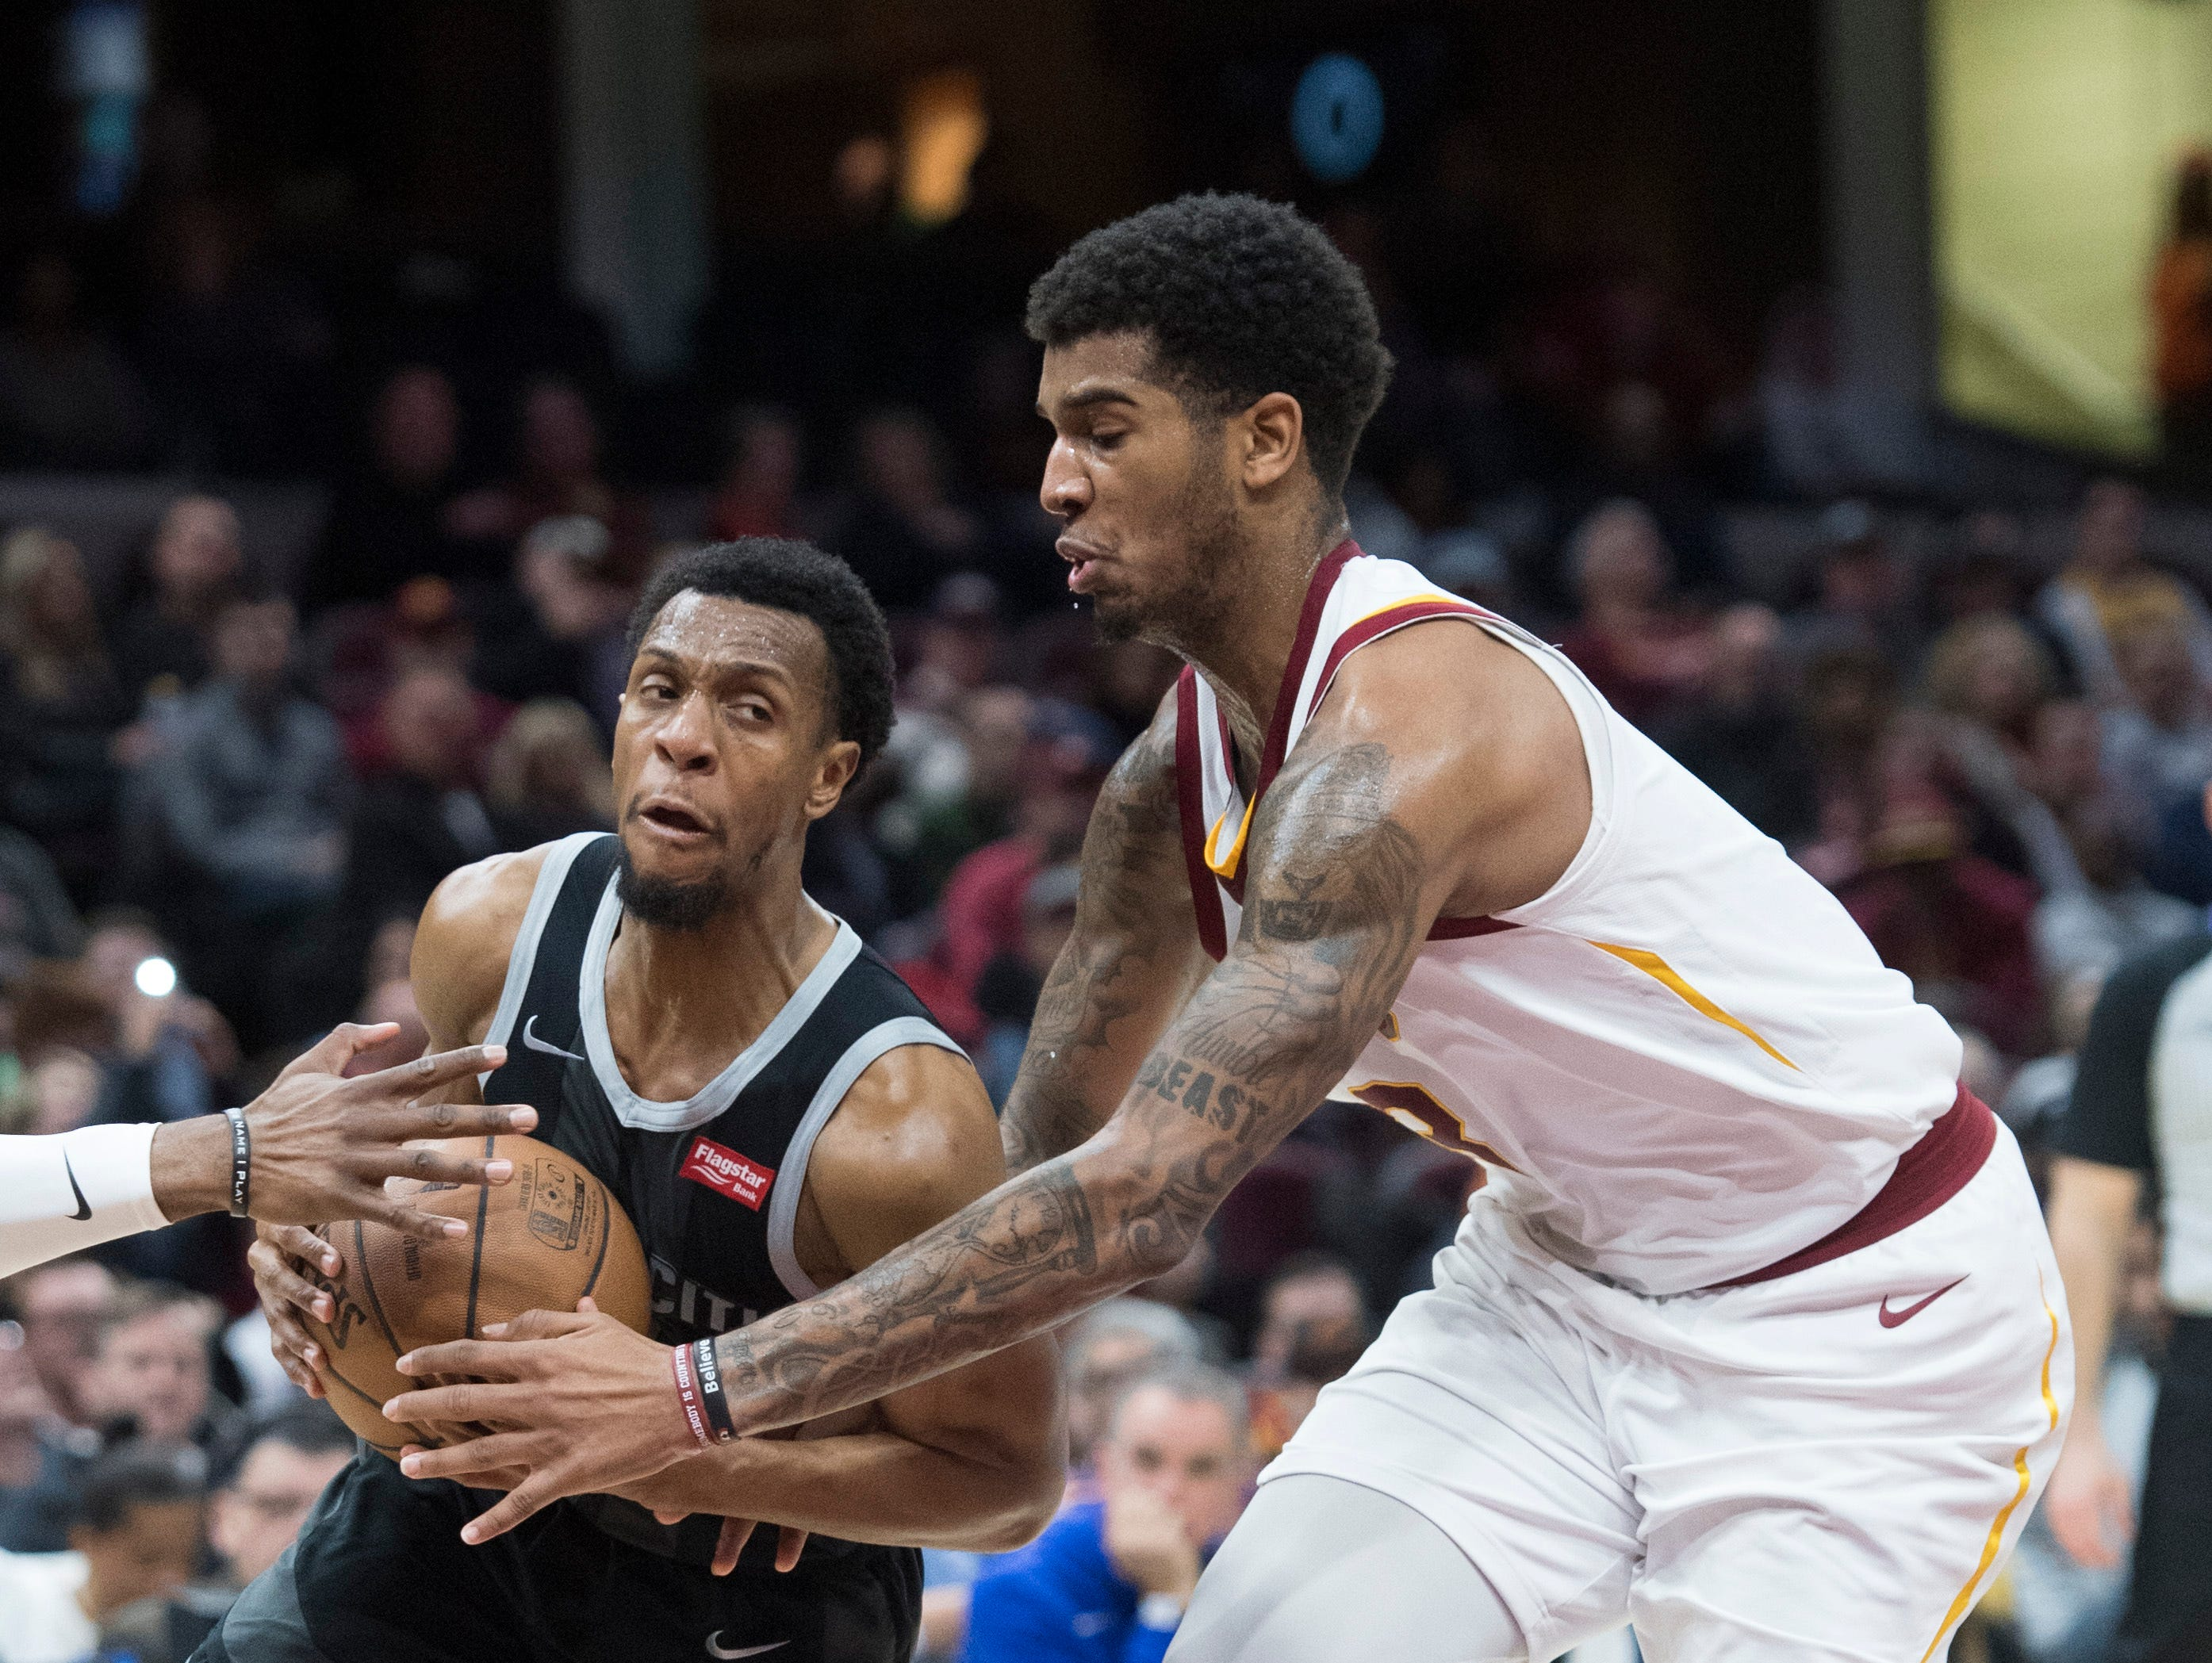 Detroit Pistons guard Ish Smith, left, drives to the basket against Cleveland Cavaliers forward Marquese Chriss in the second half of an NBA basketball game.